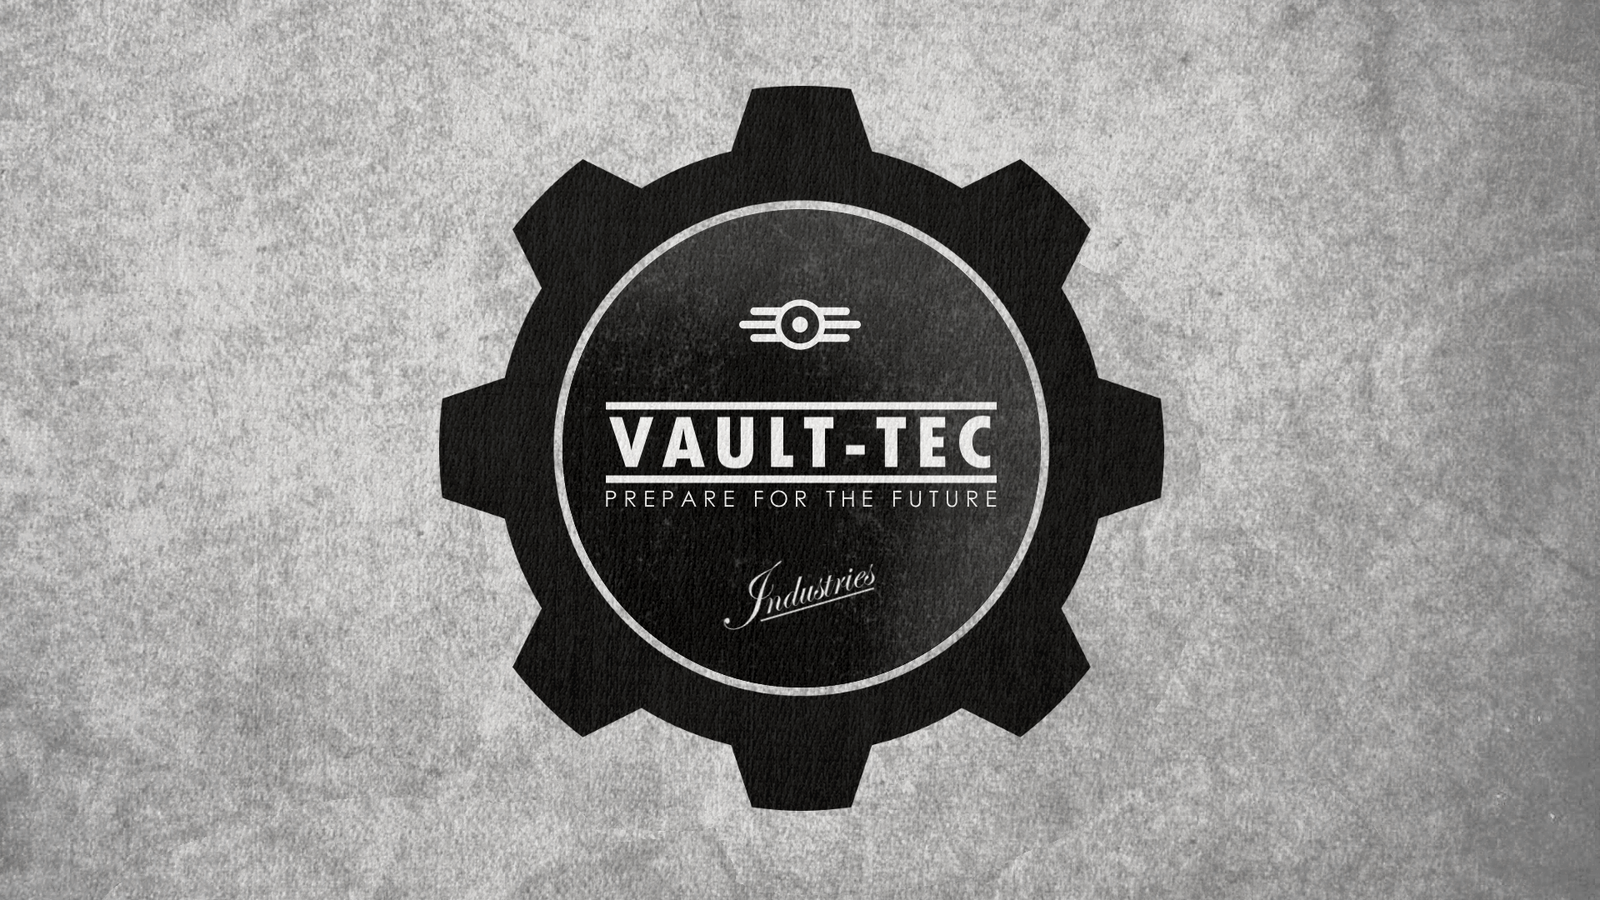 ... Logo fallout 4's vault-tec phone number actually works if you call